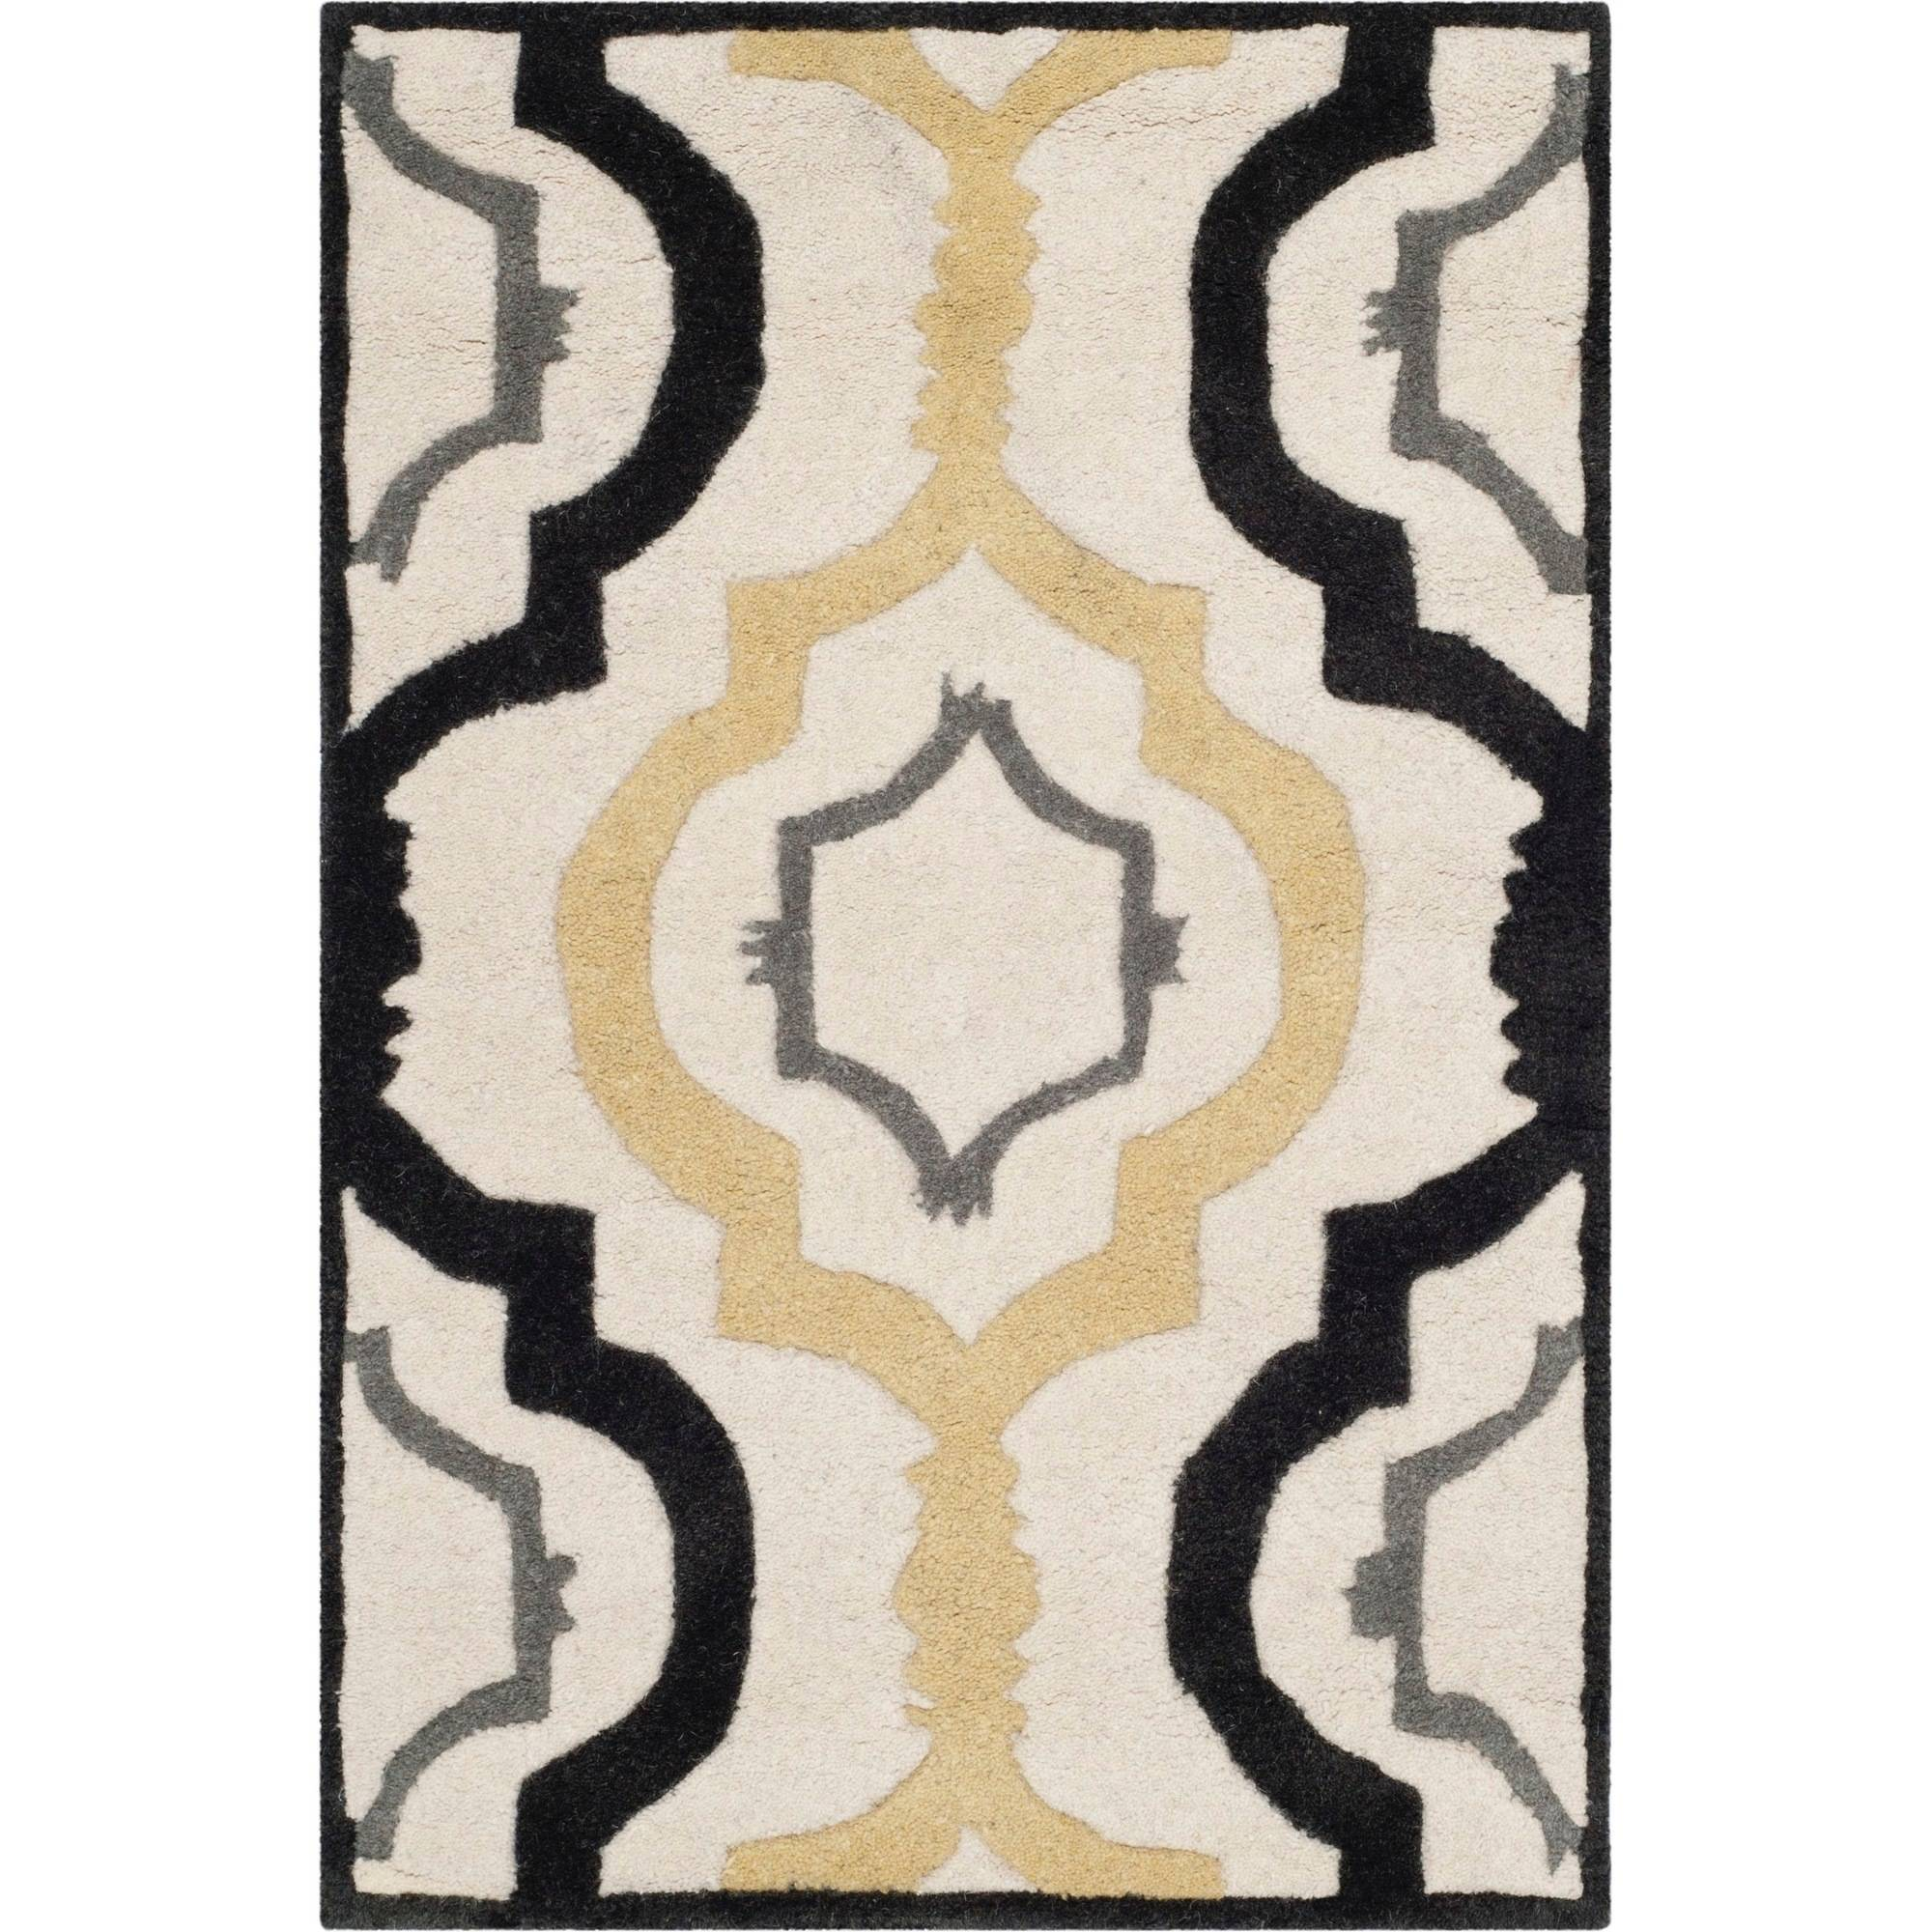 Safavieh Chatham Dylan Hand-Tufted Wool Area Rug, Ivory/Multi